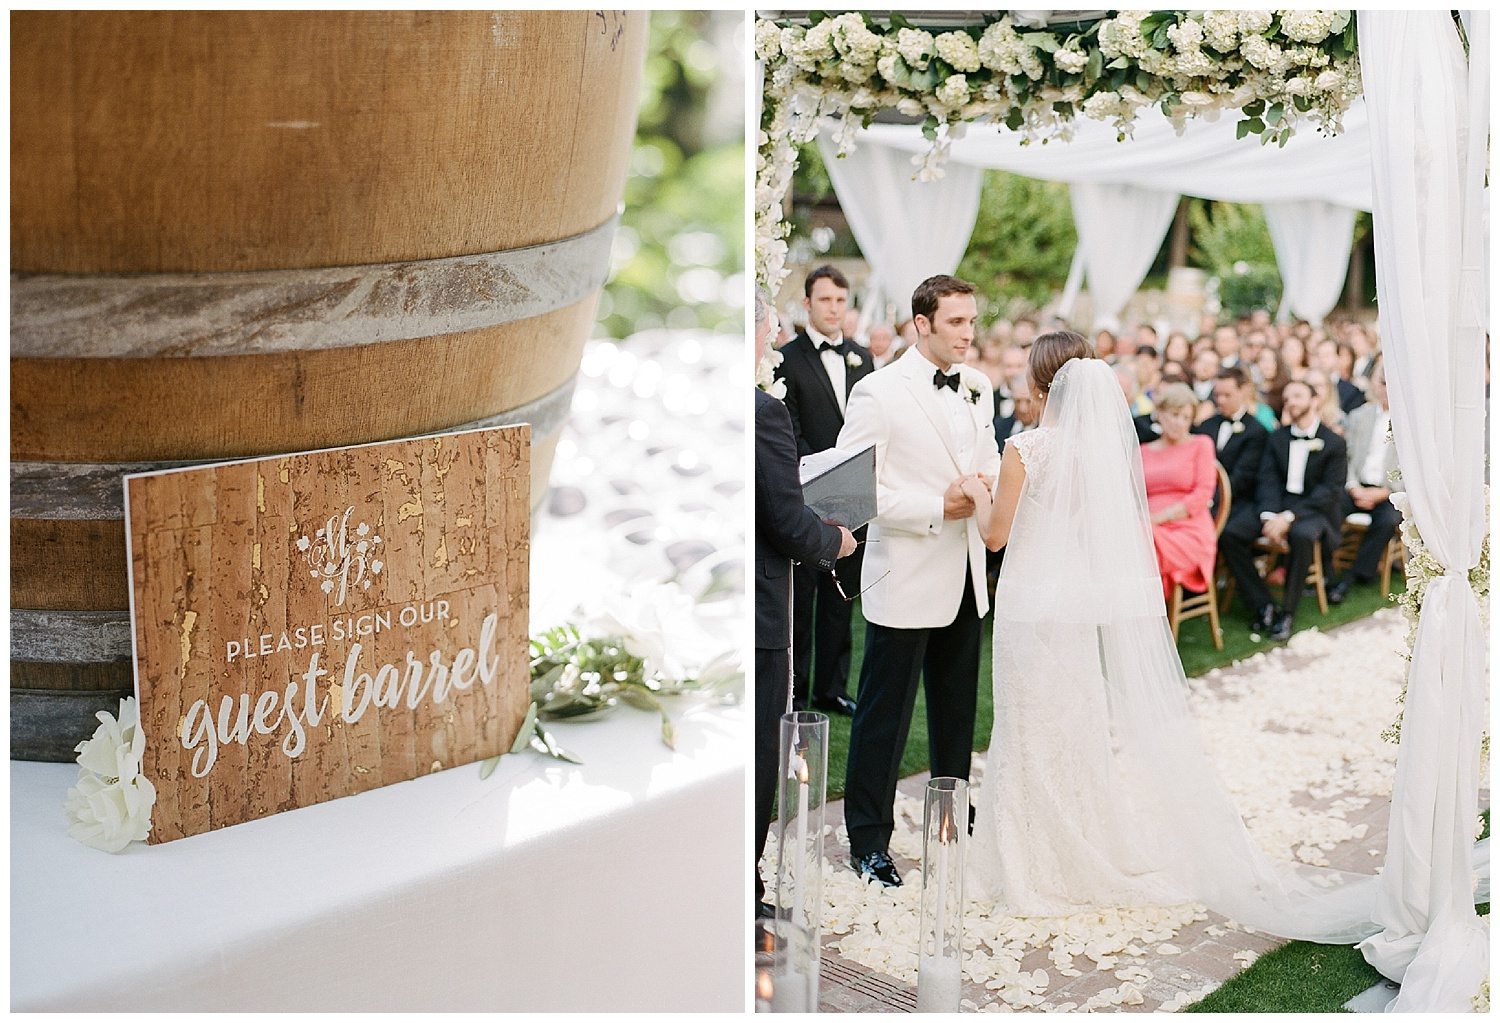 Bride and groom exchanging vows at the wedding ceremony at Vintage Estates, Yountville in Napa Valley; Sylvie Gil Photography